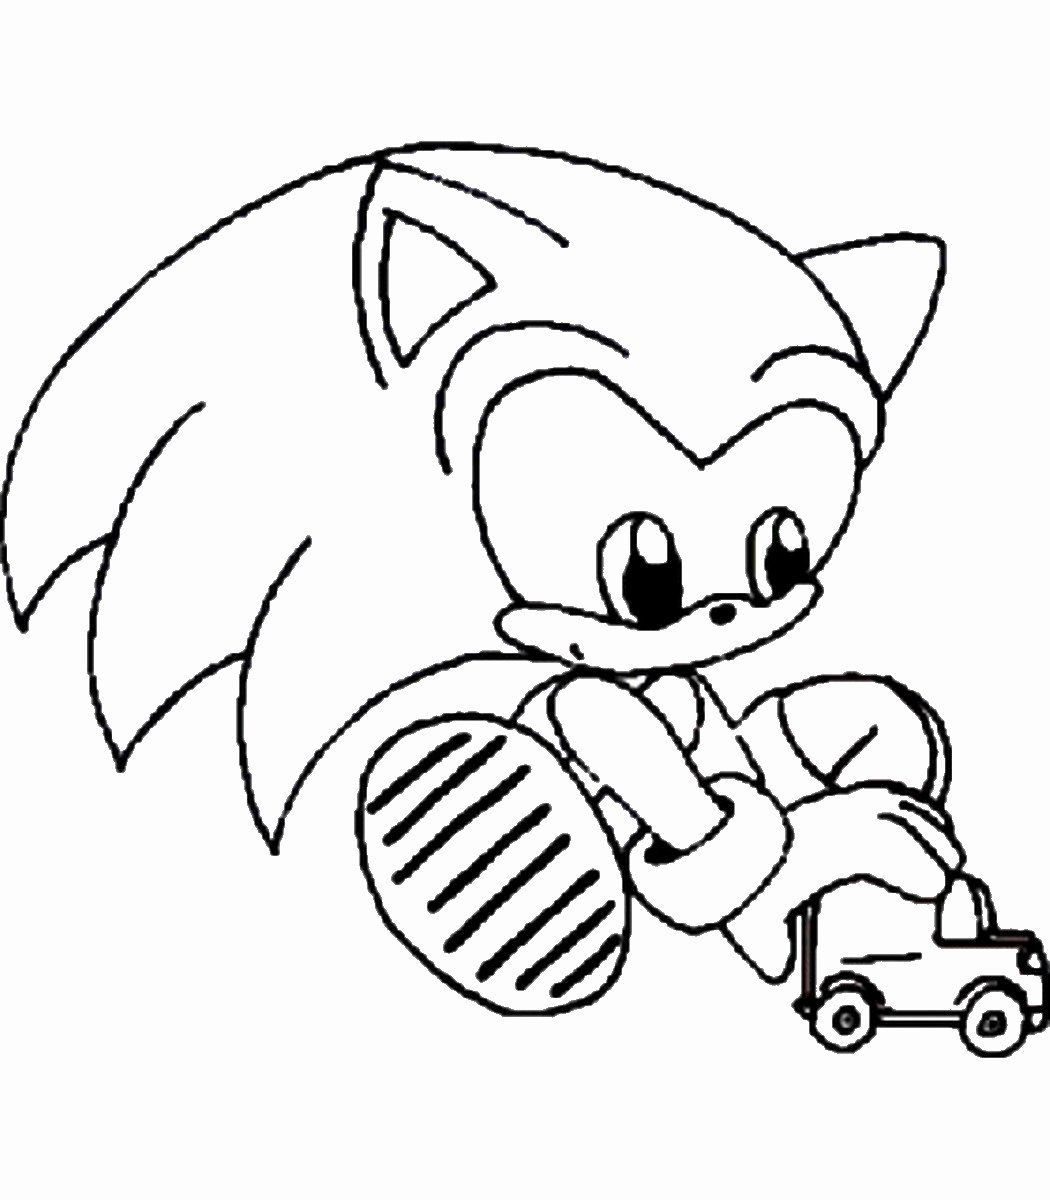 32 Sonic The Hedgehog Coloring Book In 2020 Coloring Pages